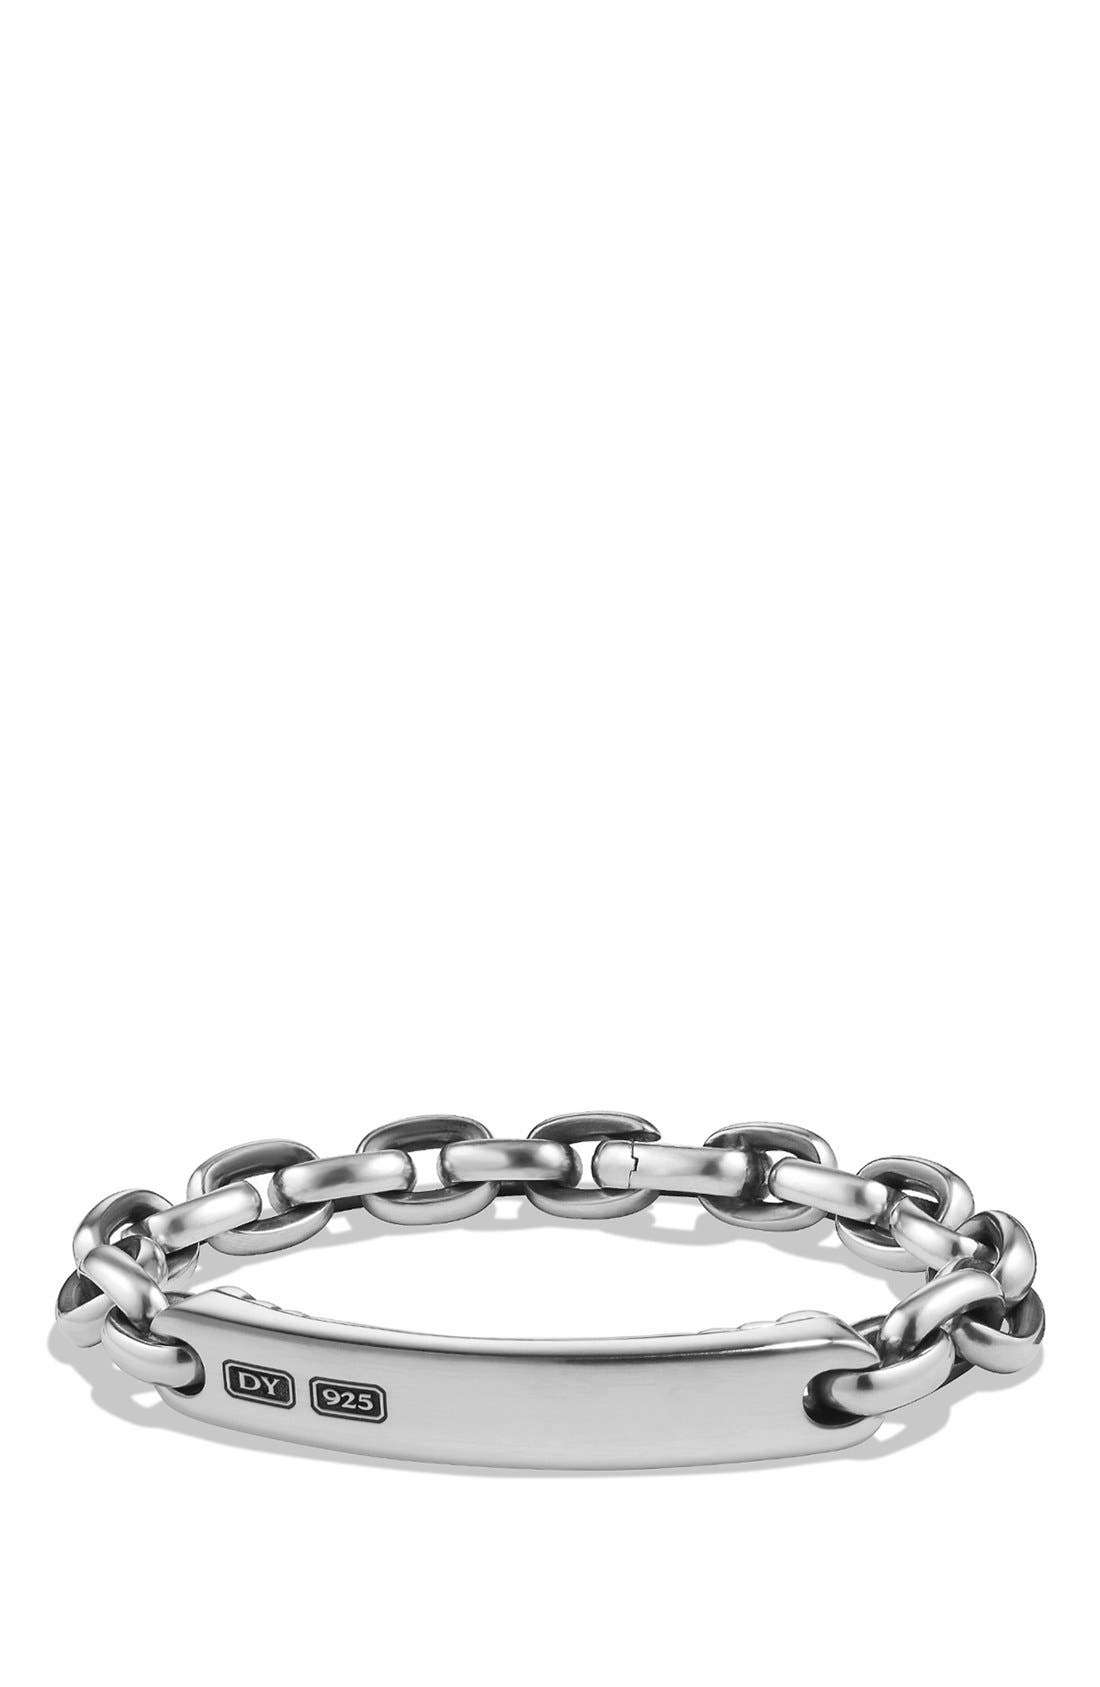 Main Image - David Yurman 'Streamline' ID Bracelet